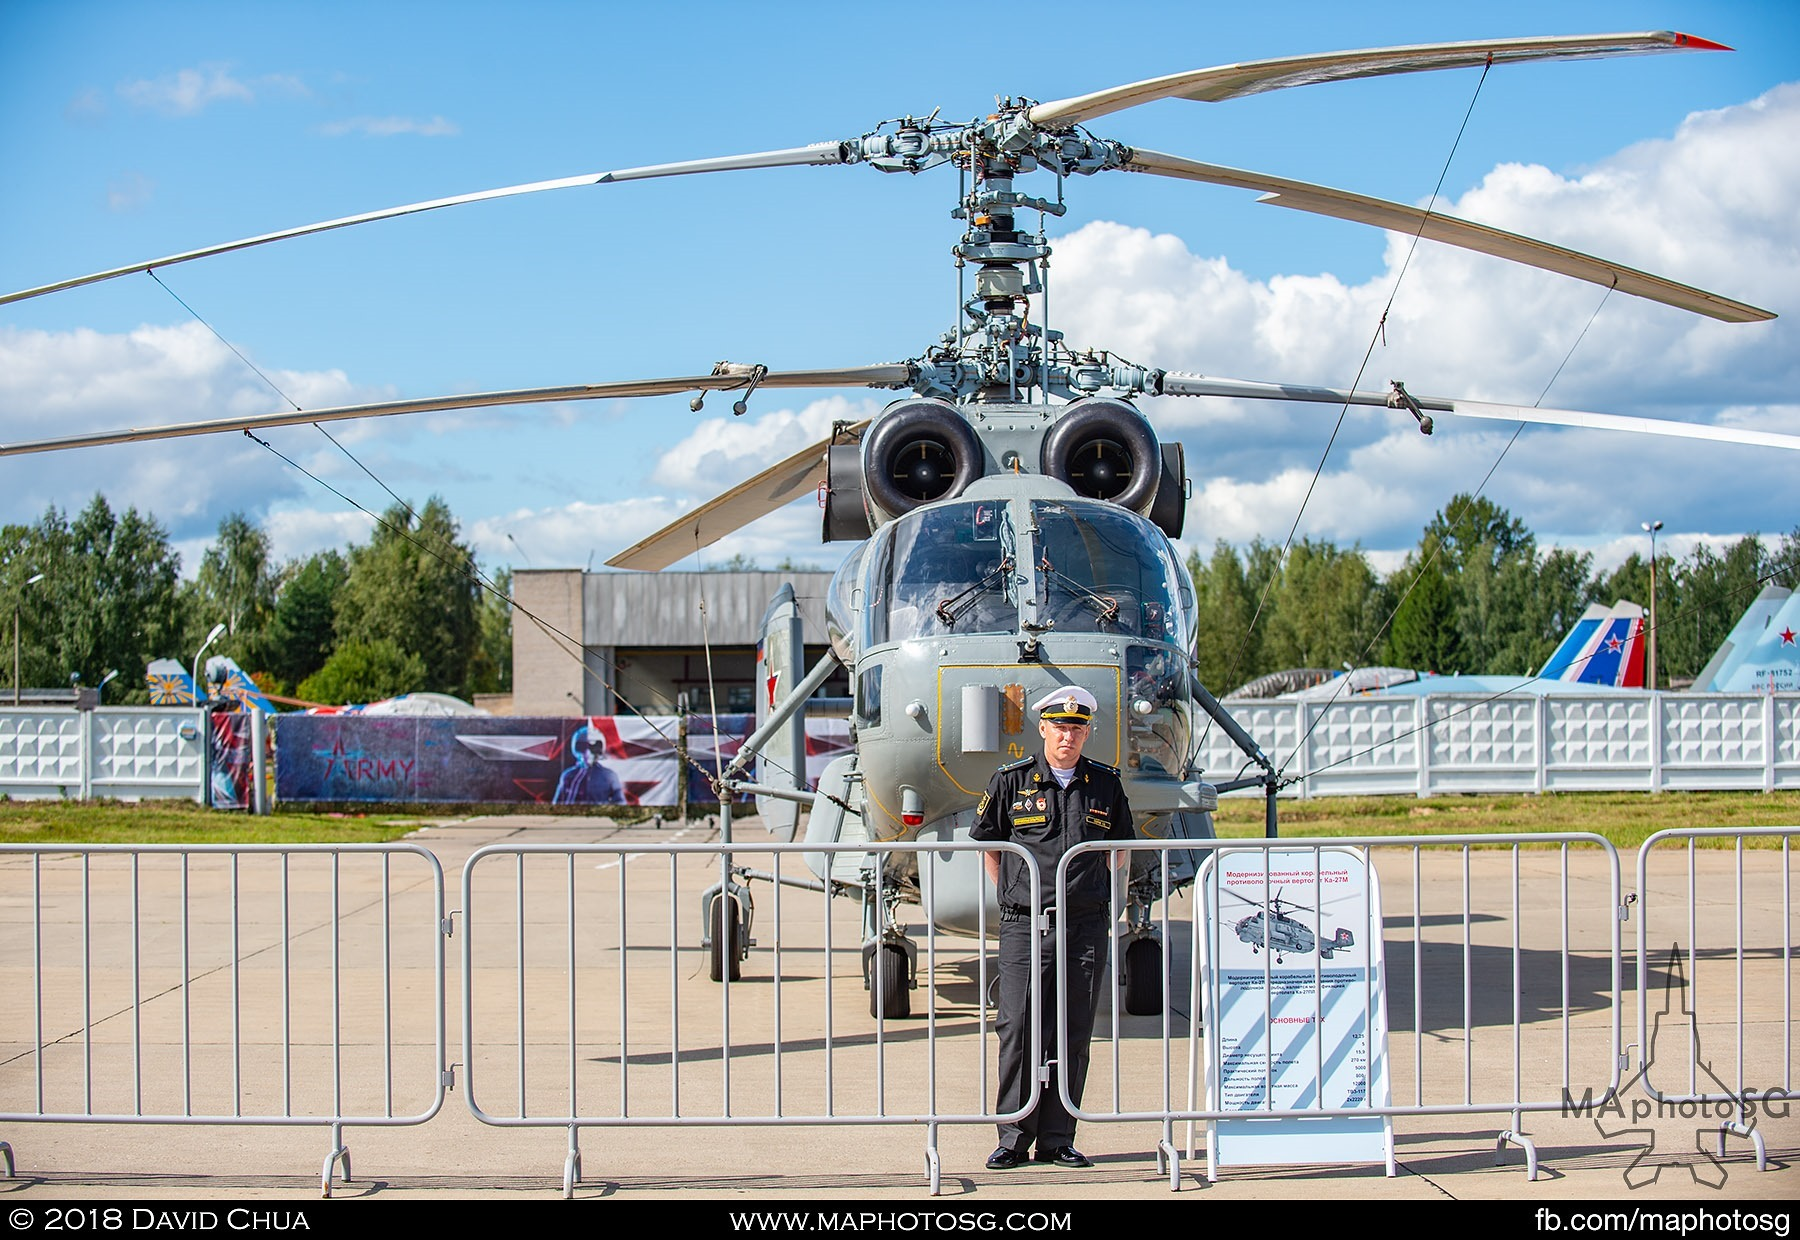 27. Pilot of the Ka-27m Helix helicopter